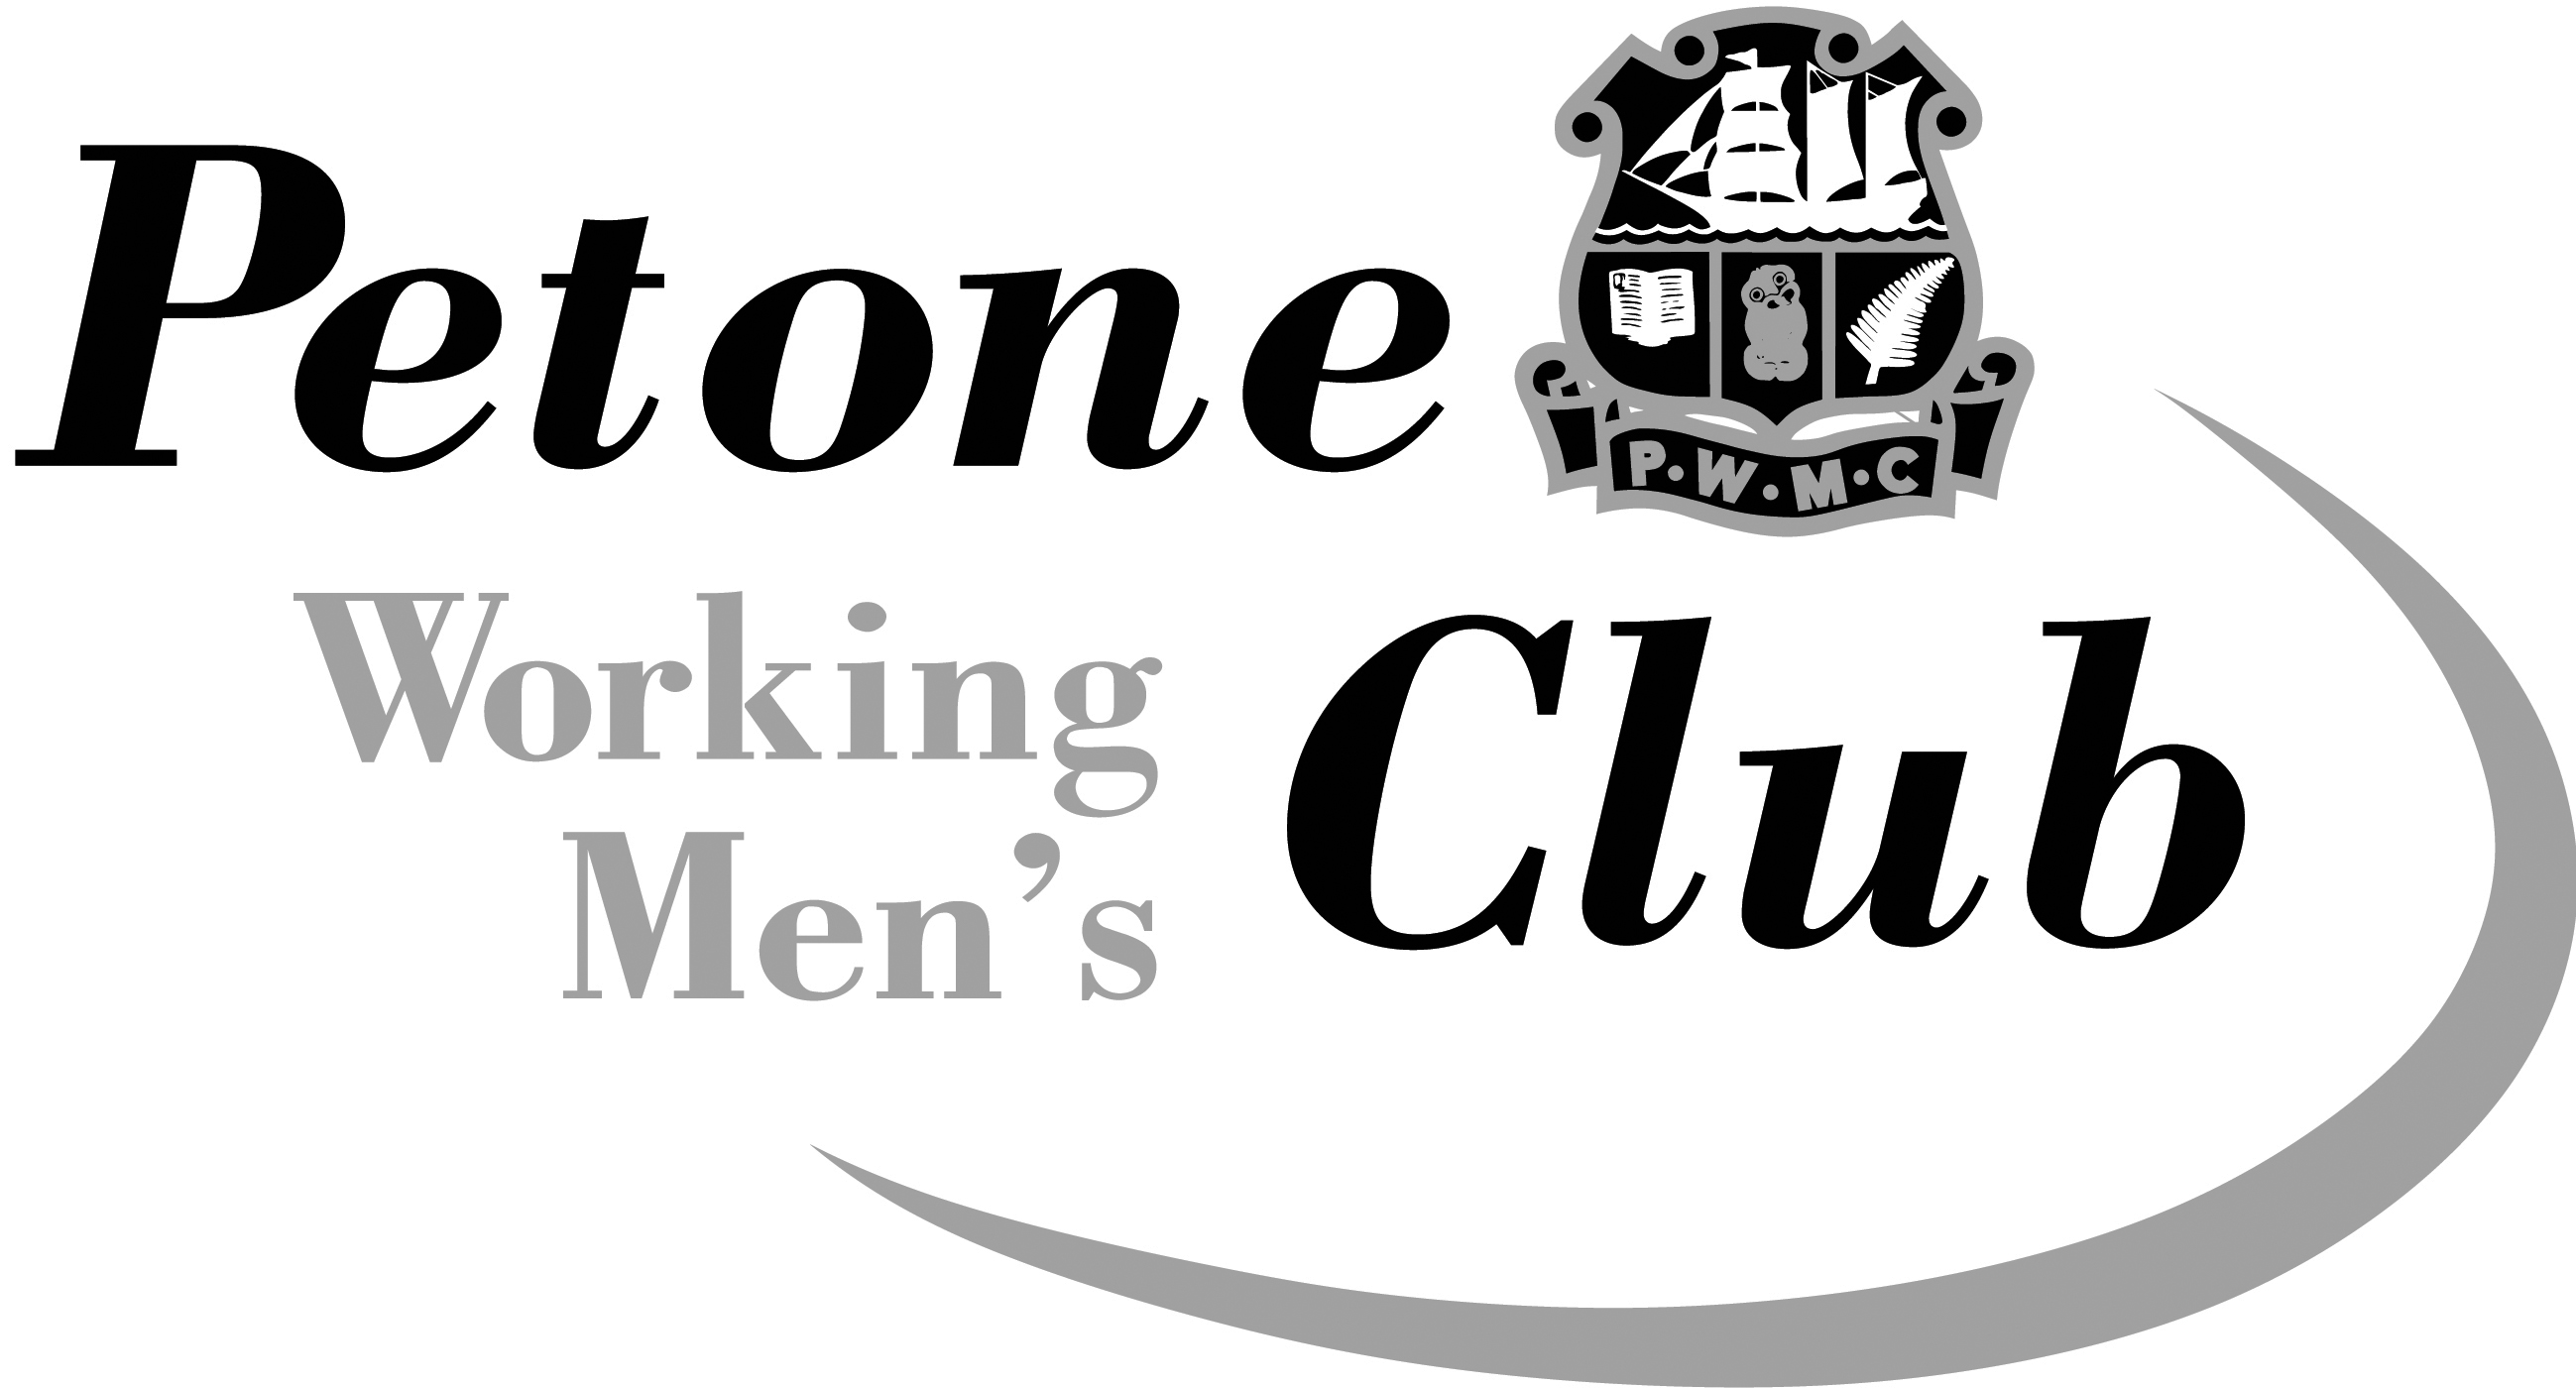 Working Men's Clubs